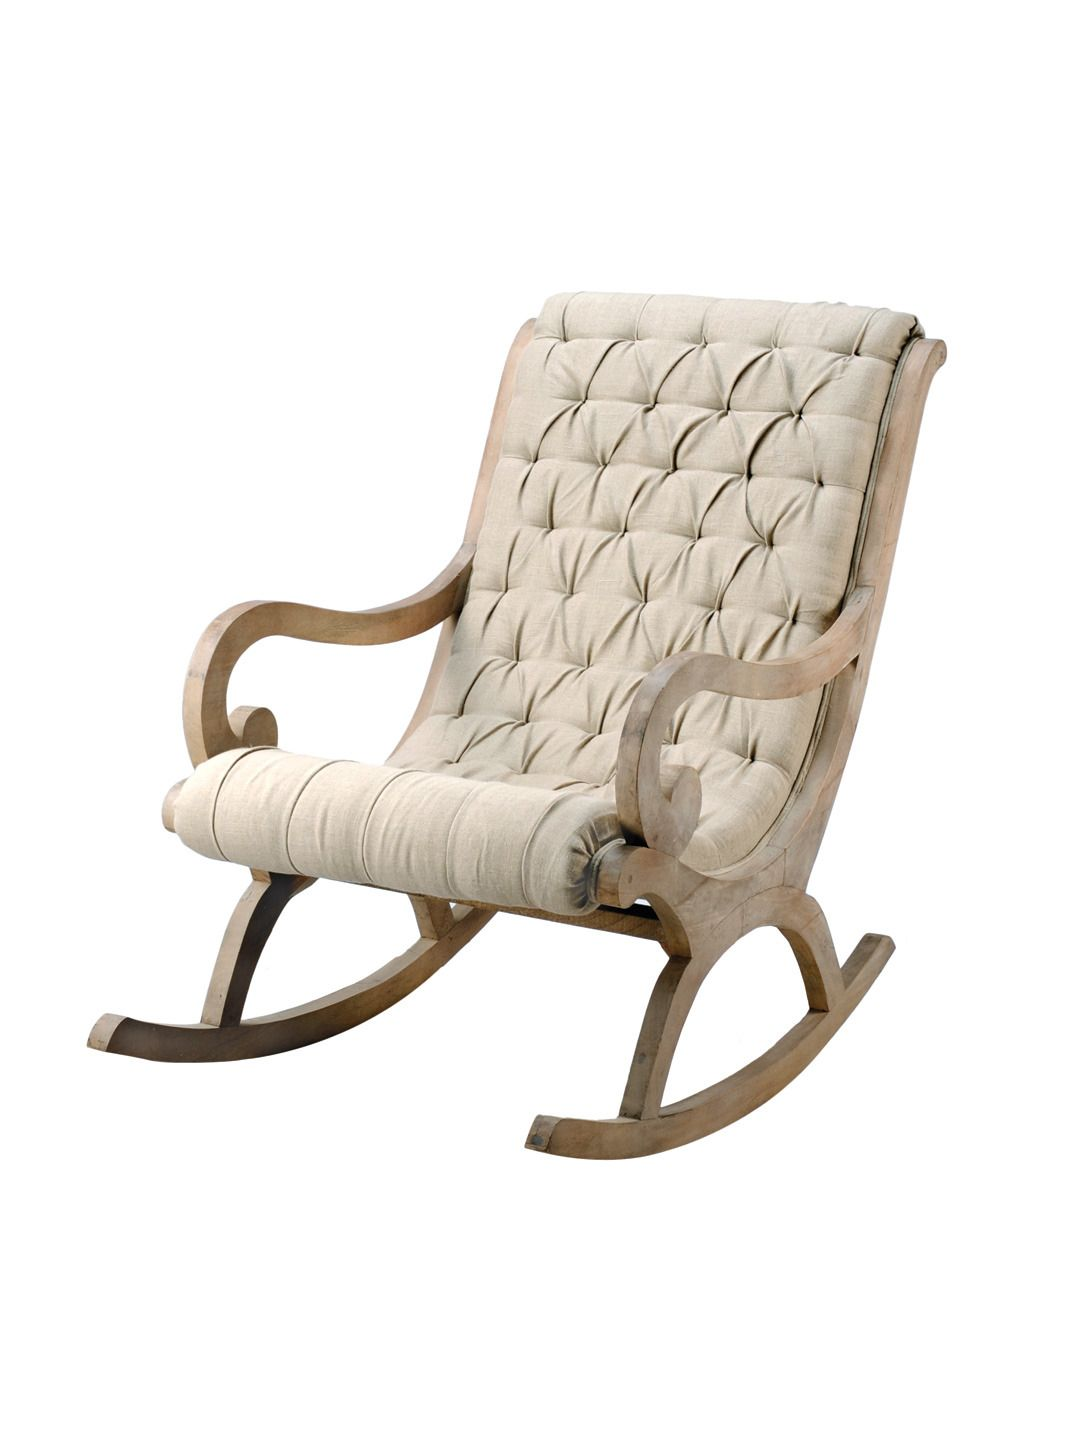 Barreveld Tufted Rocking Chair